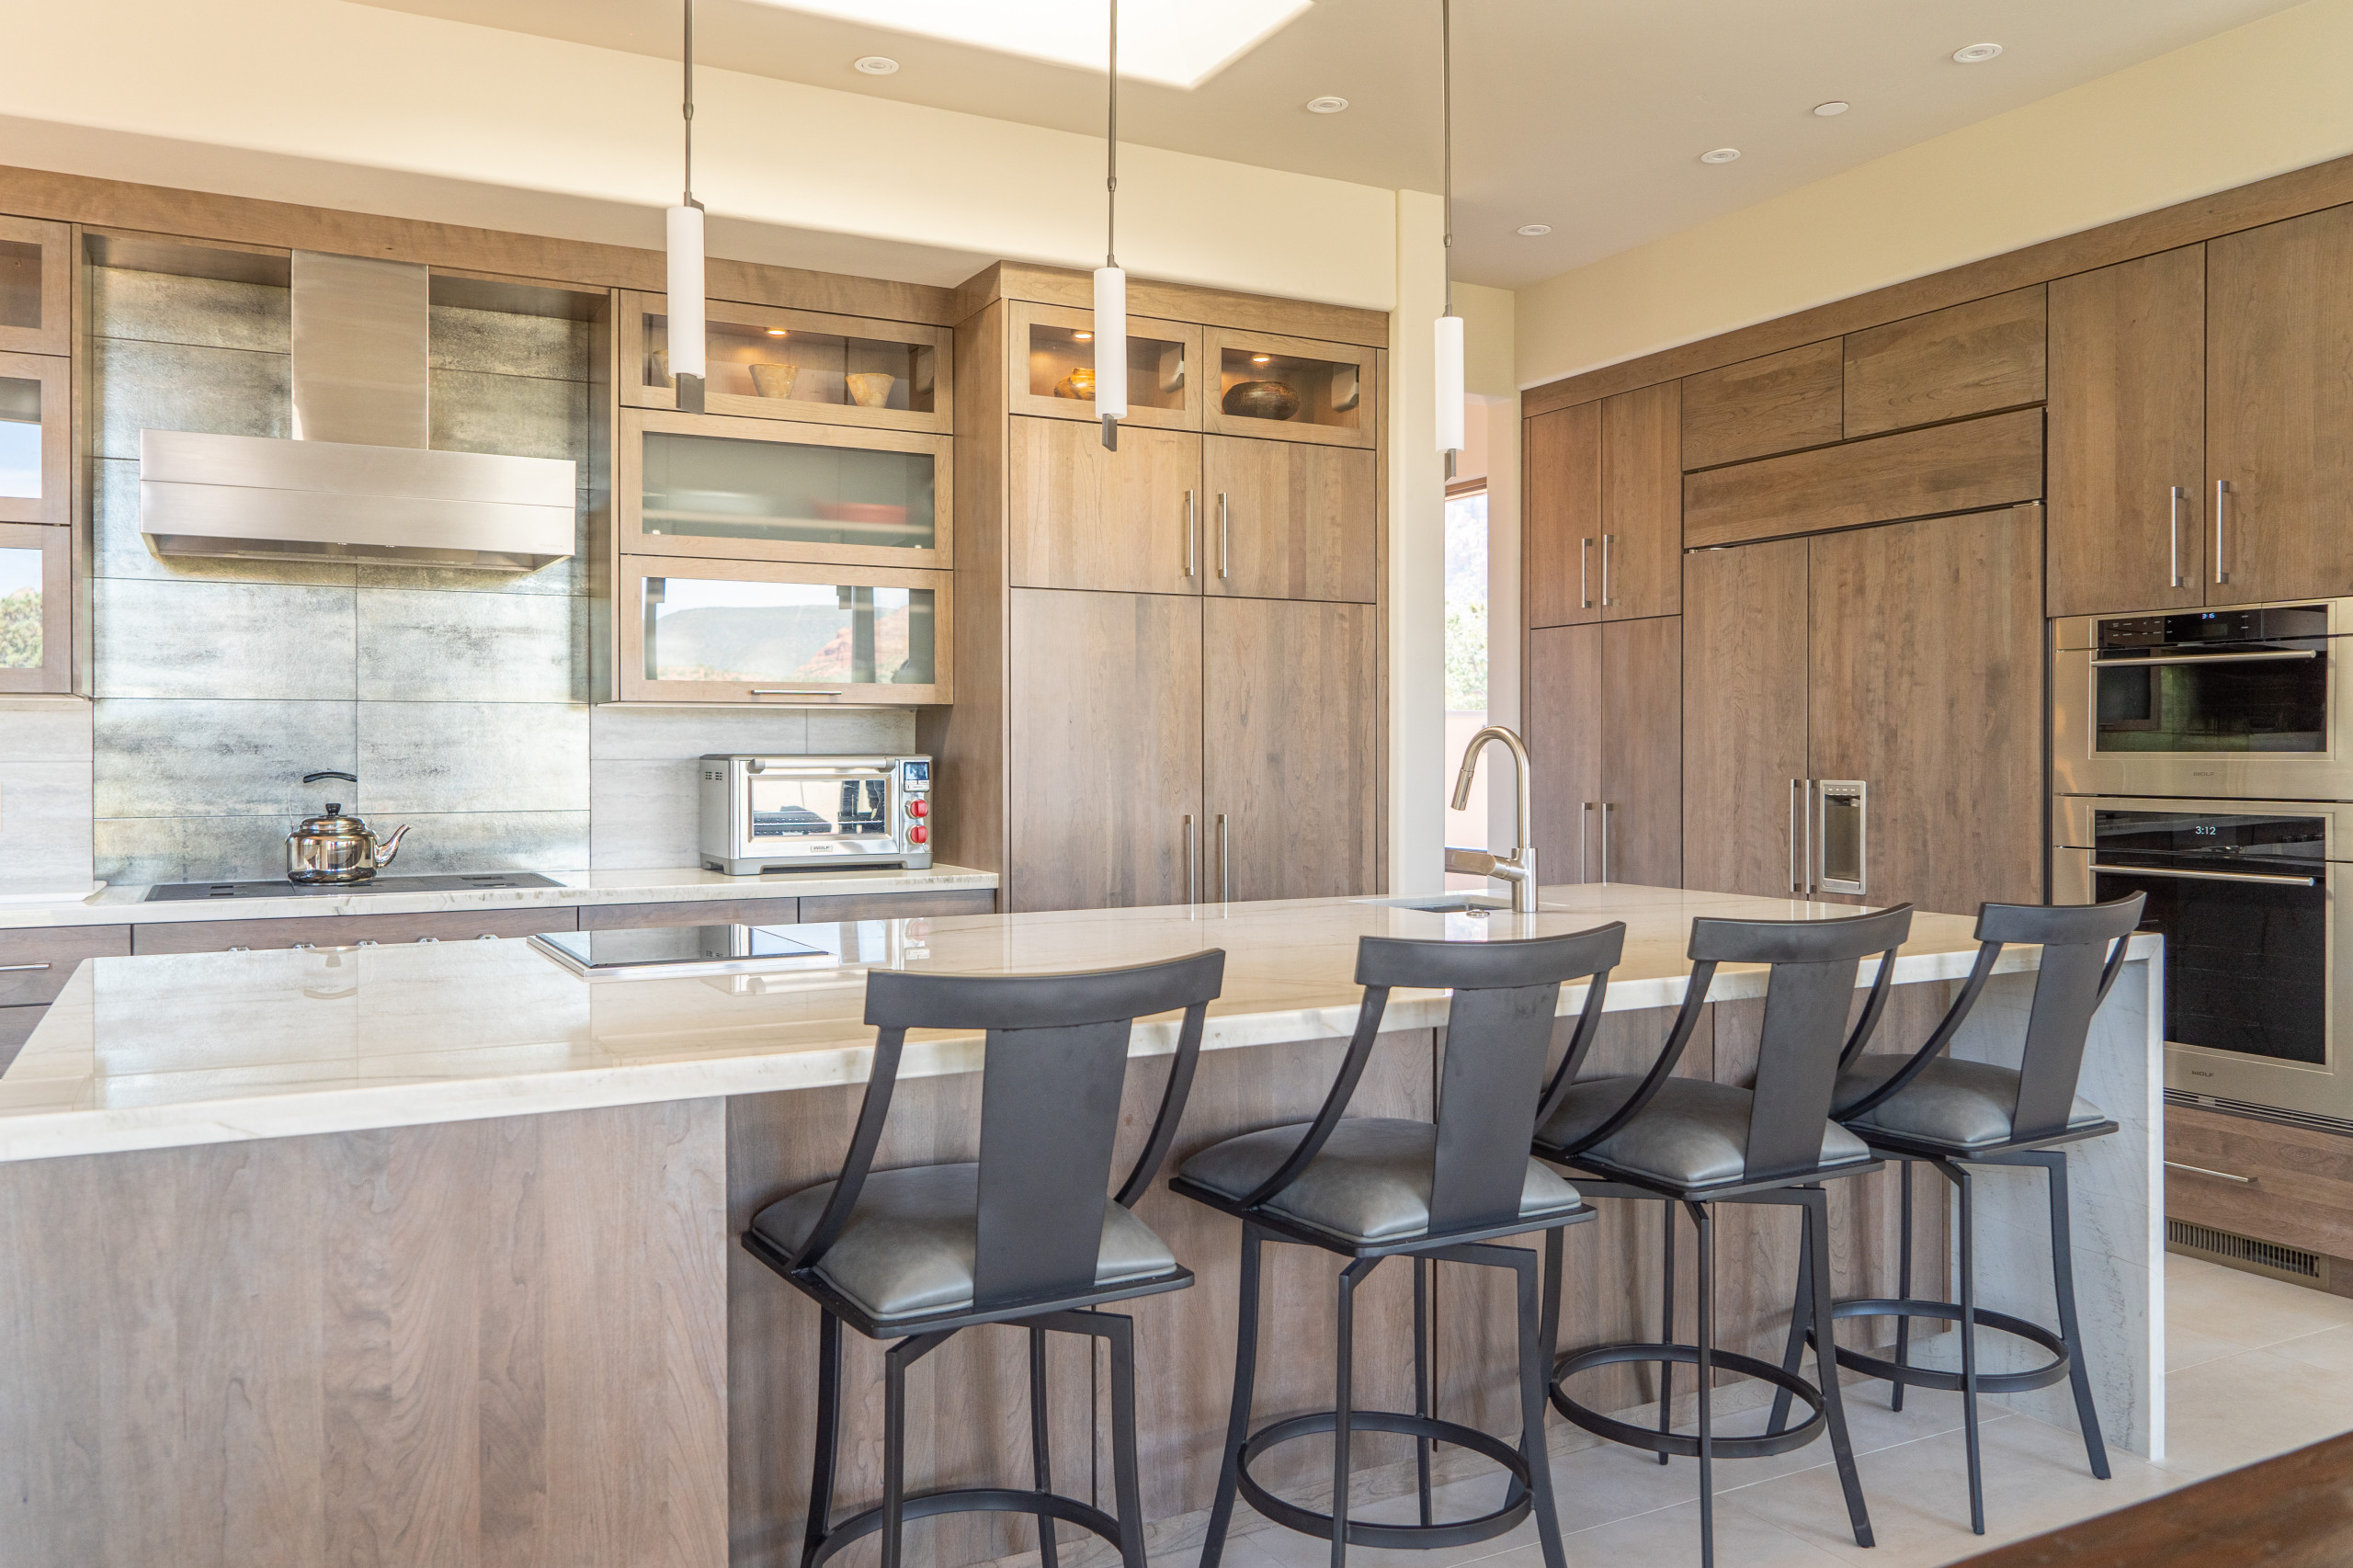 9 Beautiful Kitchen with Light Wood Cabinets Pictures & Ideas ...